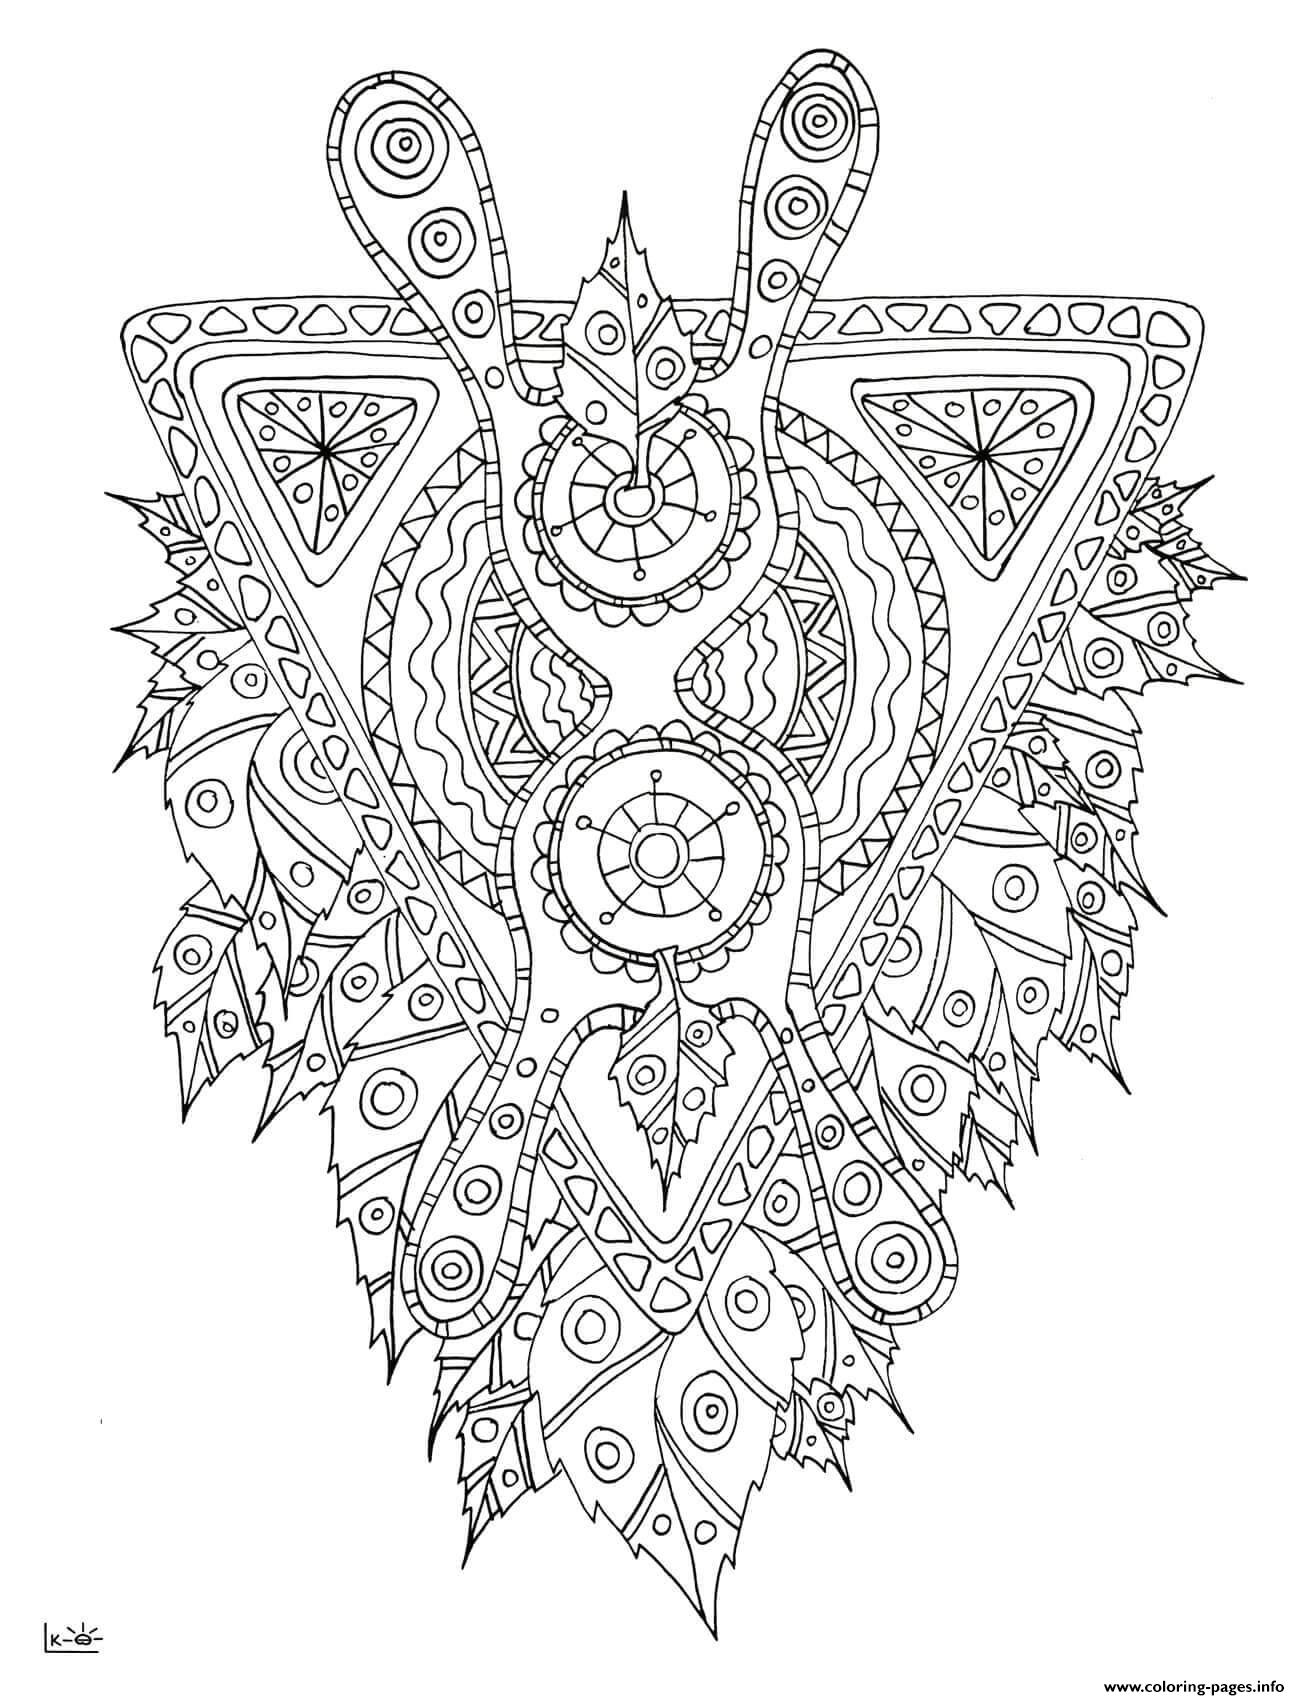 Mythical Creature With Tribal Pattern